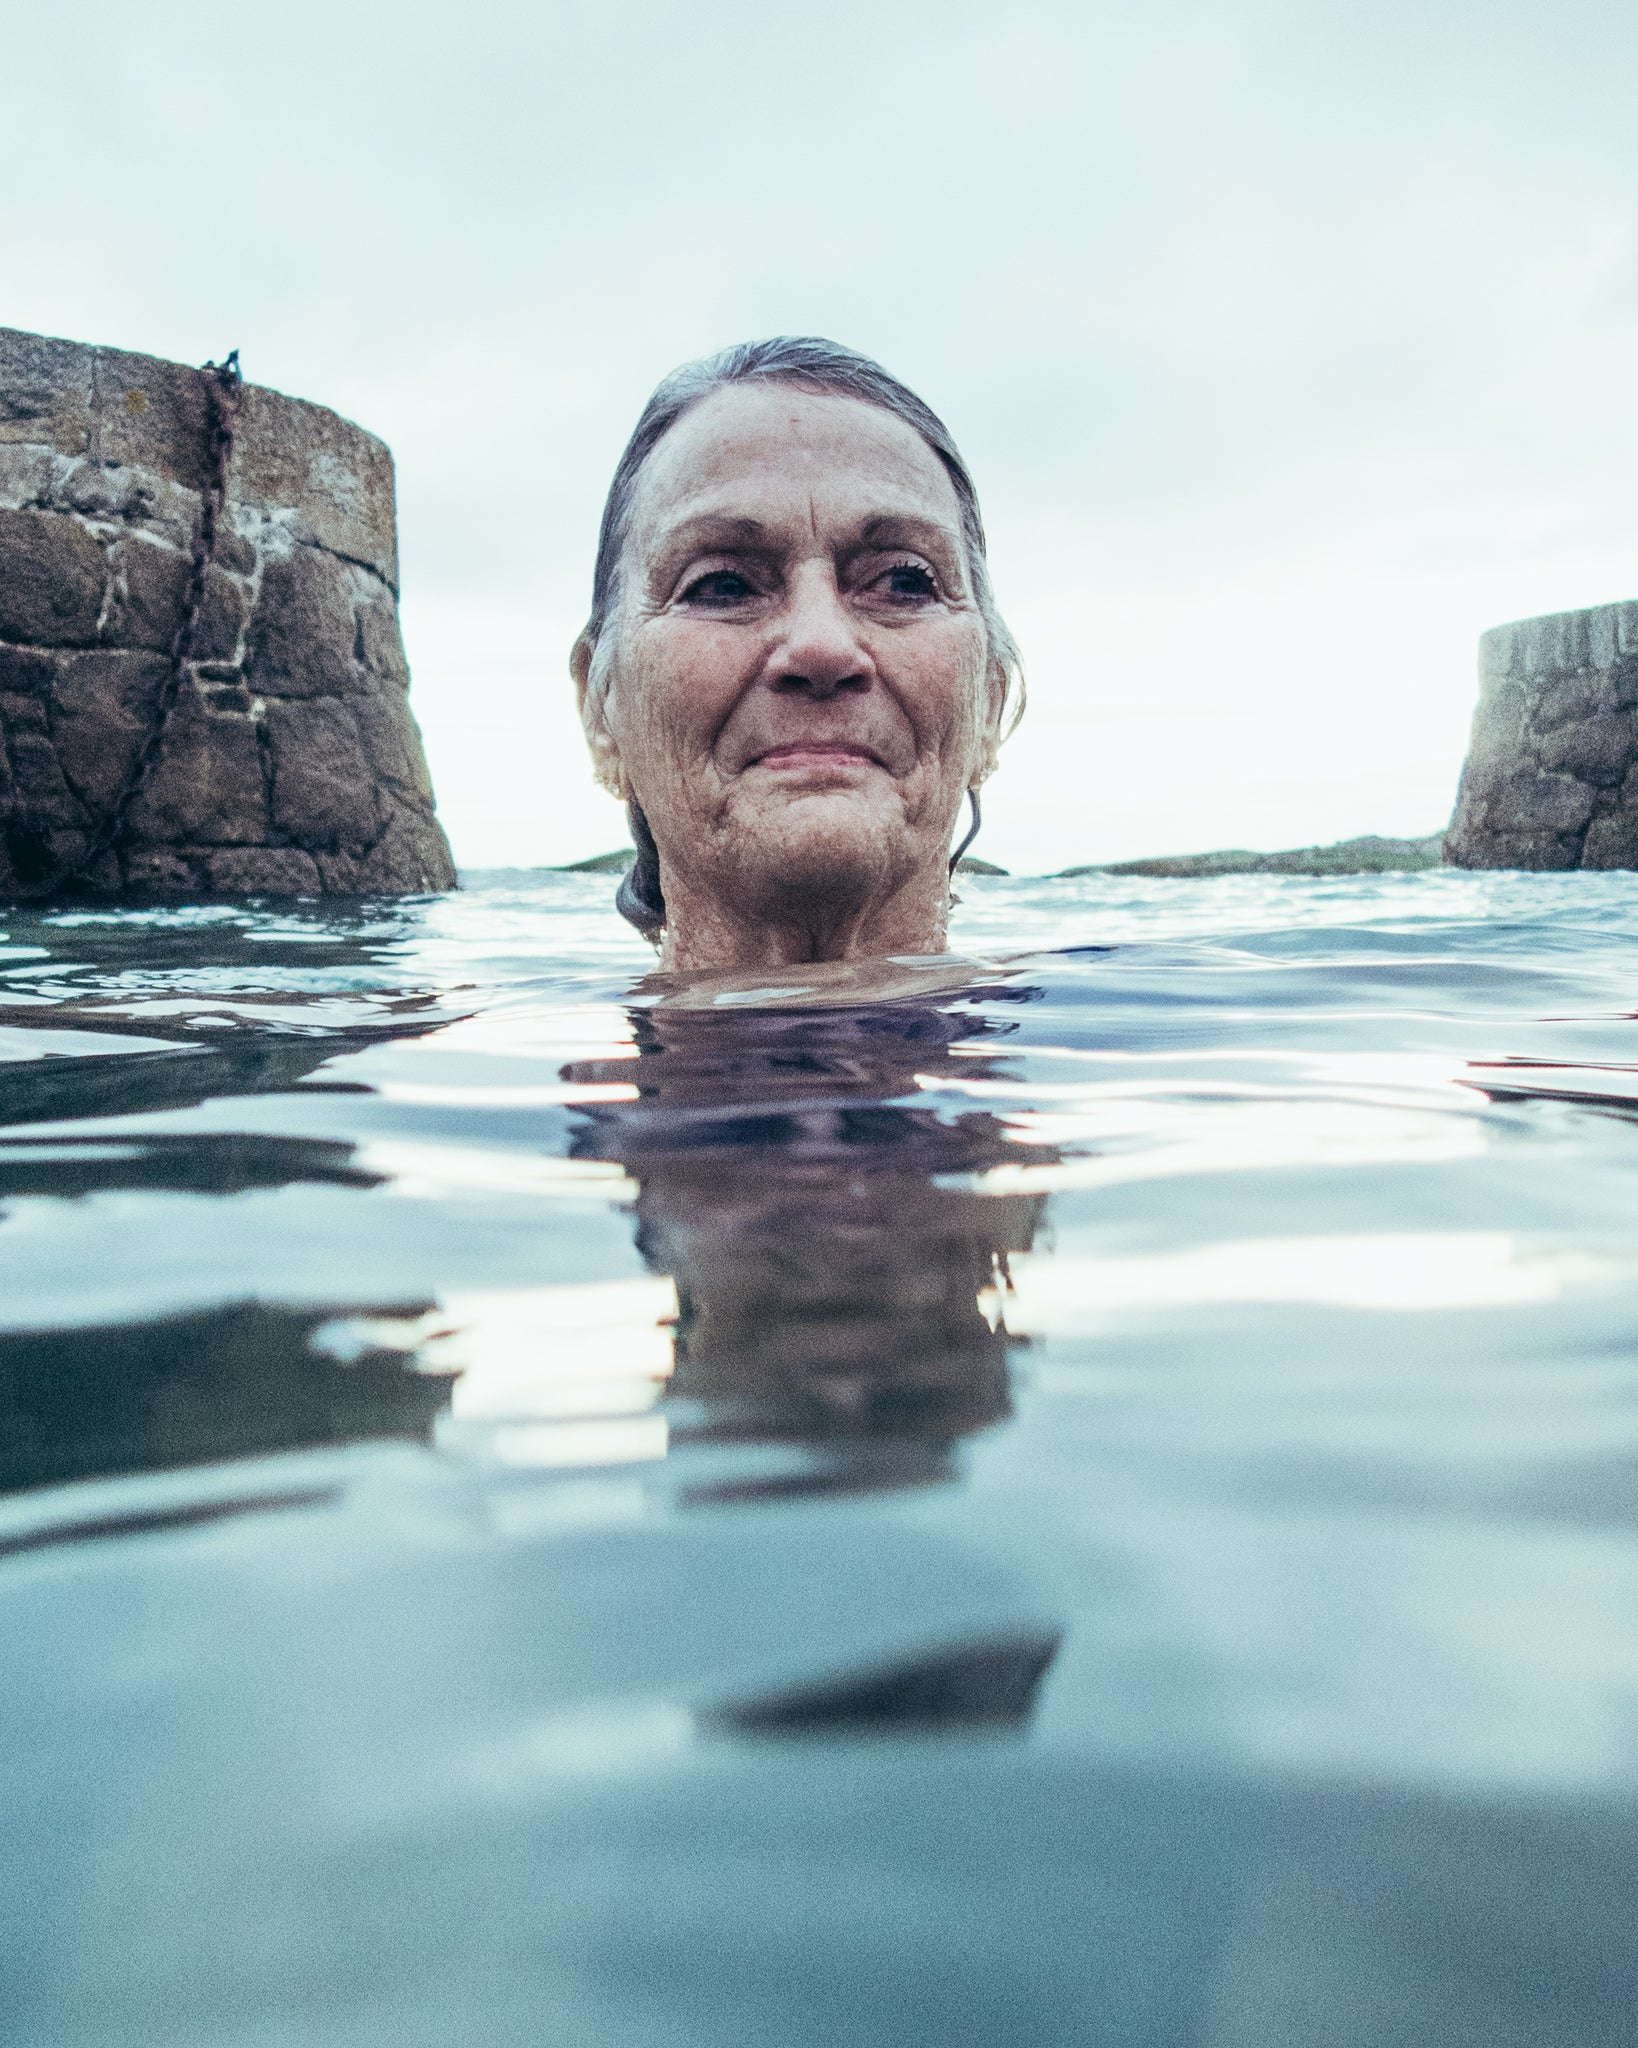 Linda Hebert, Humans of Swimrise